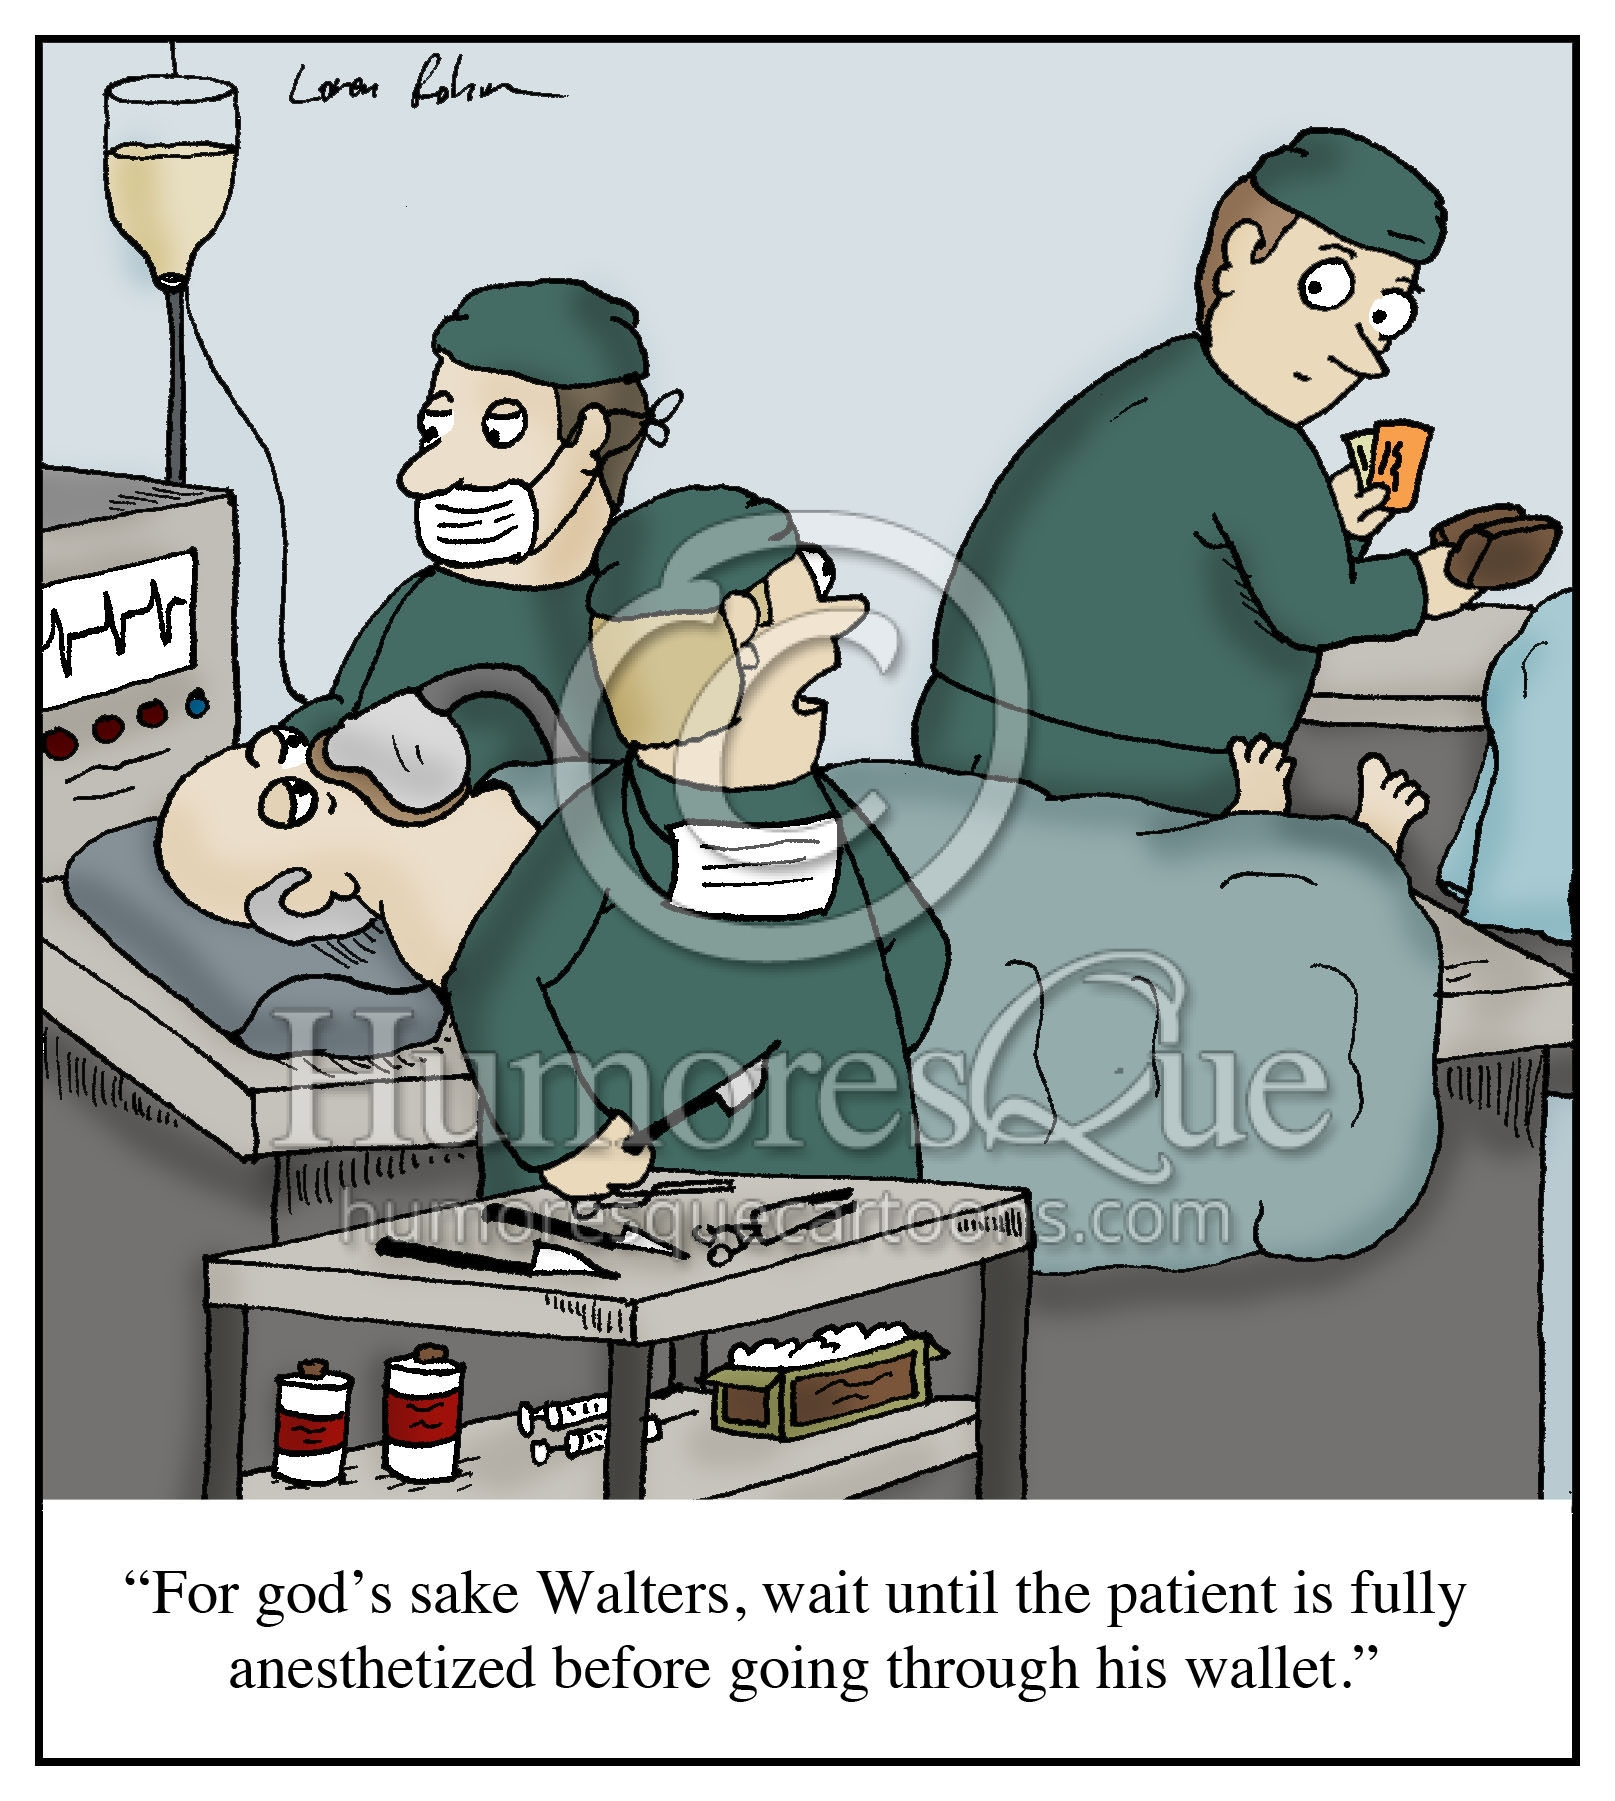 Surgical cartoons surgical cartoon funny surgical picture surgical - Surgeon Stealing Wallet Cartoon